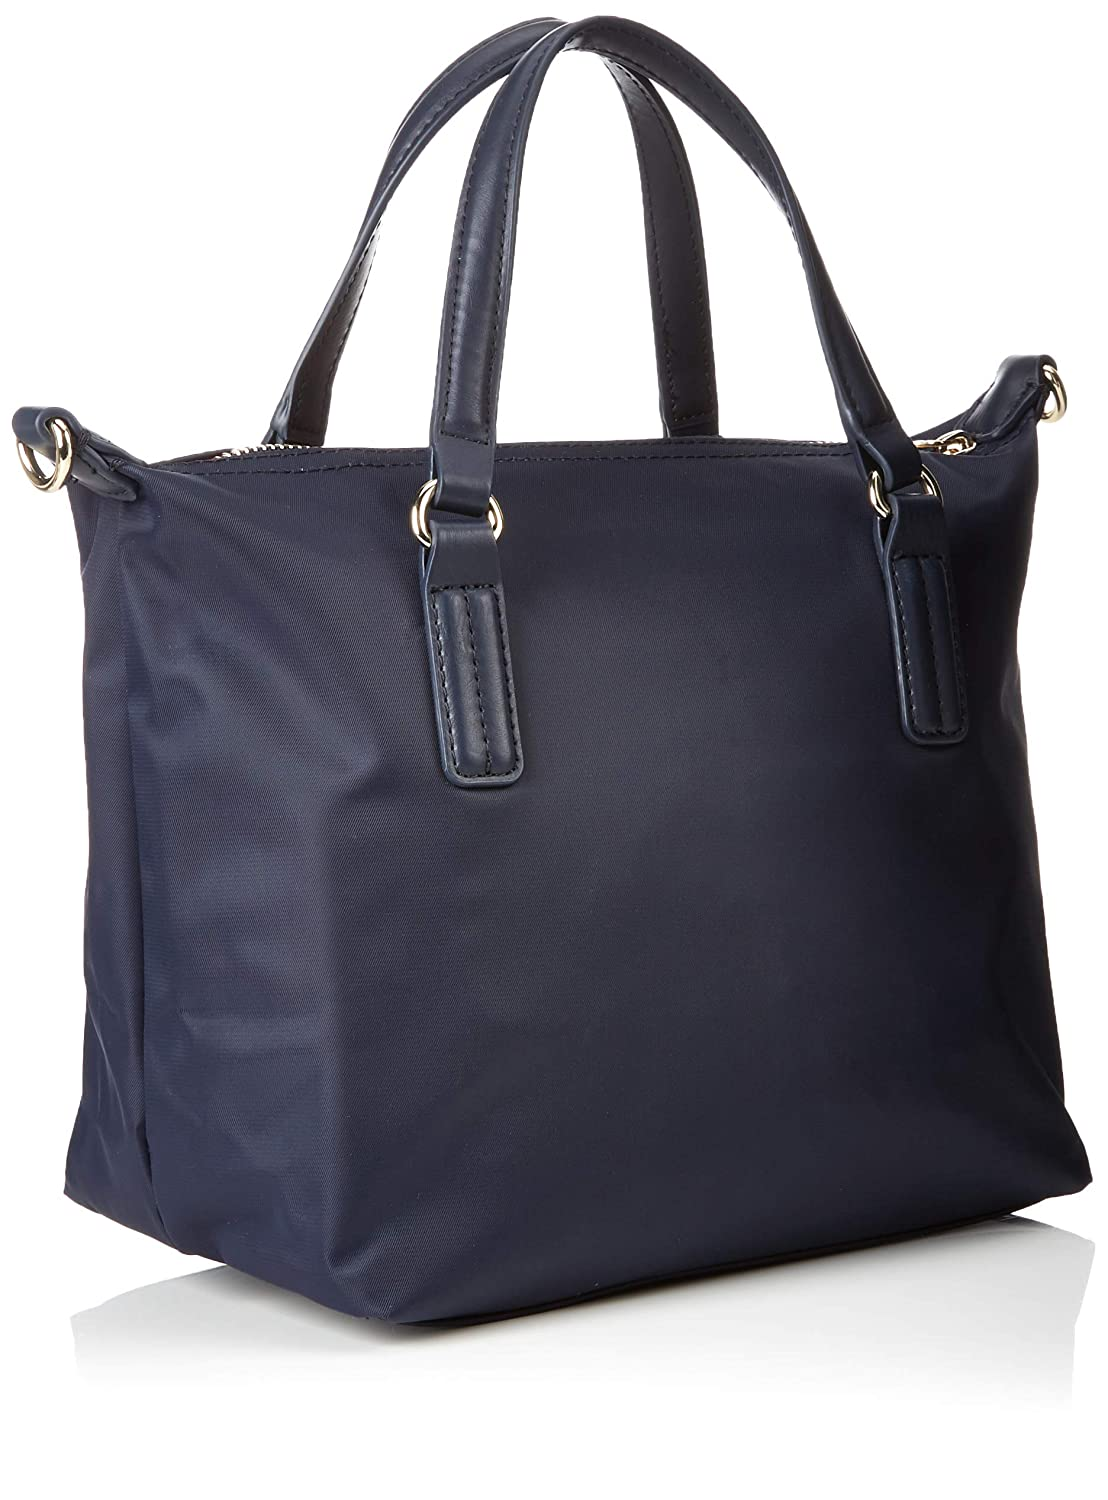 300b6460c Tommy Hilfiger Poppy Small Tote Stp, Women's Tote, Blue (Corporate),  23x15x22 cm (B x H T): Amazon.co.uk: Shoes & Bags